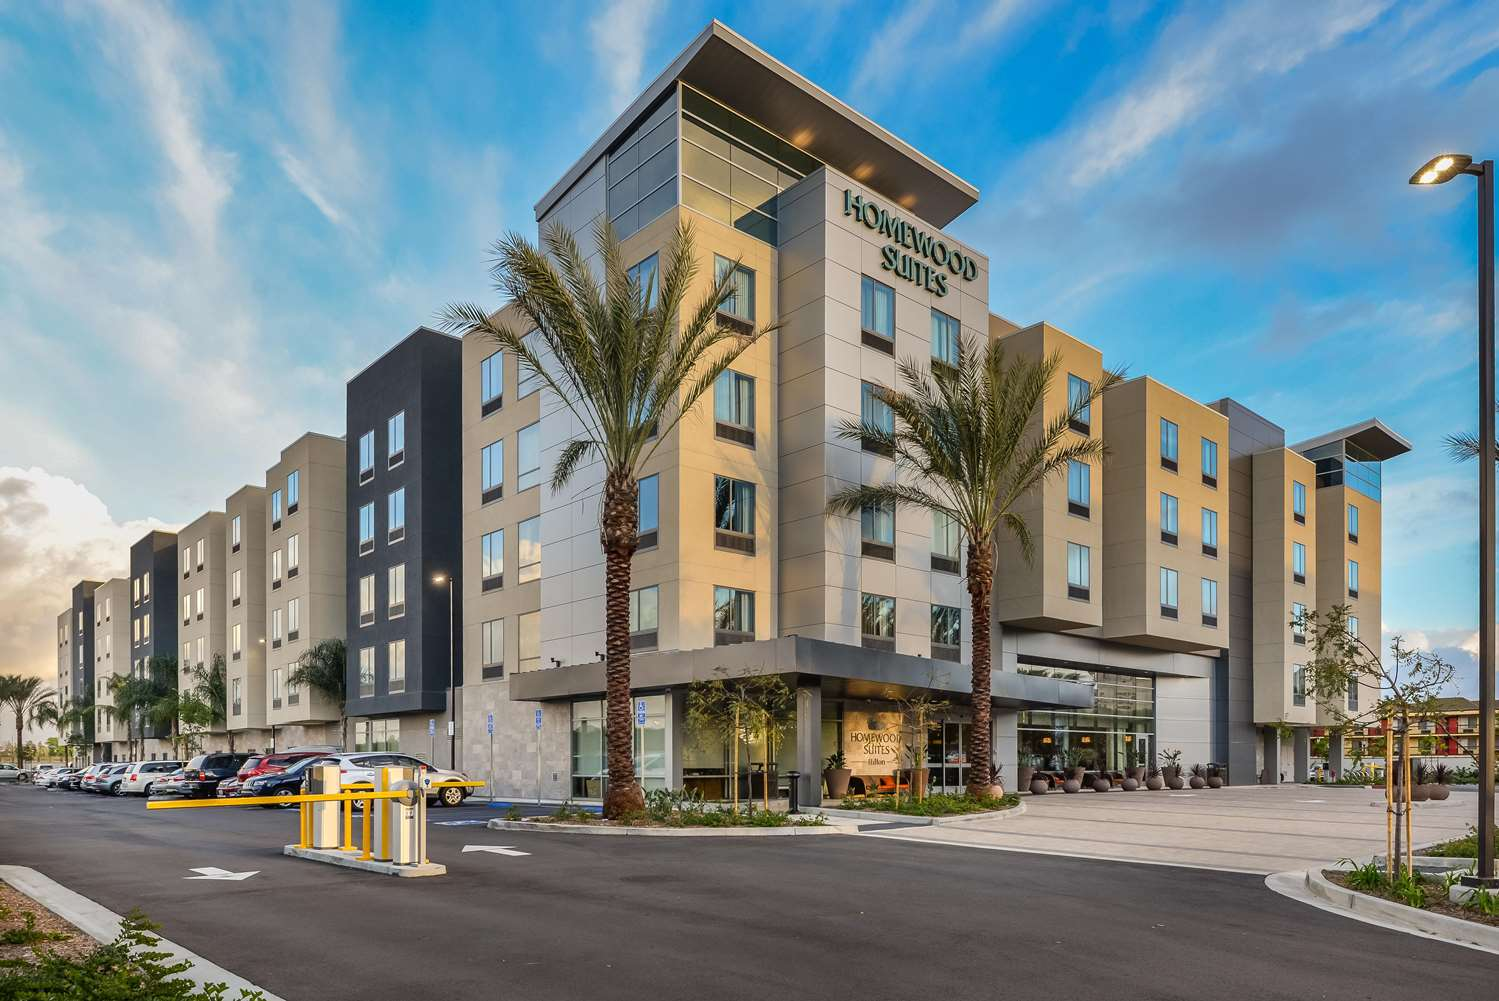 Exterior view - Homewood Suites by Hilton Resort Convention Center Anaheim